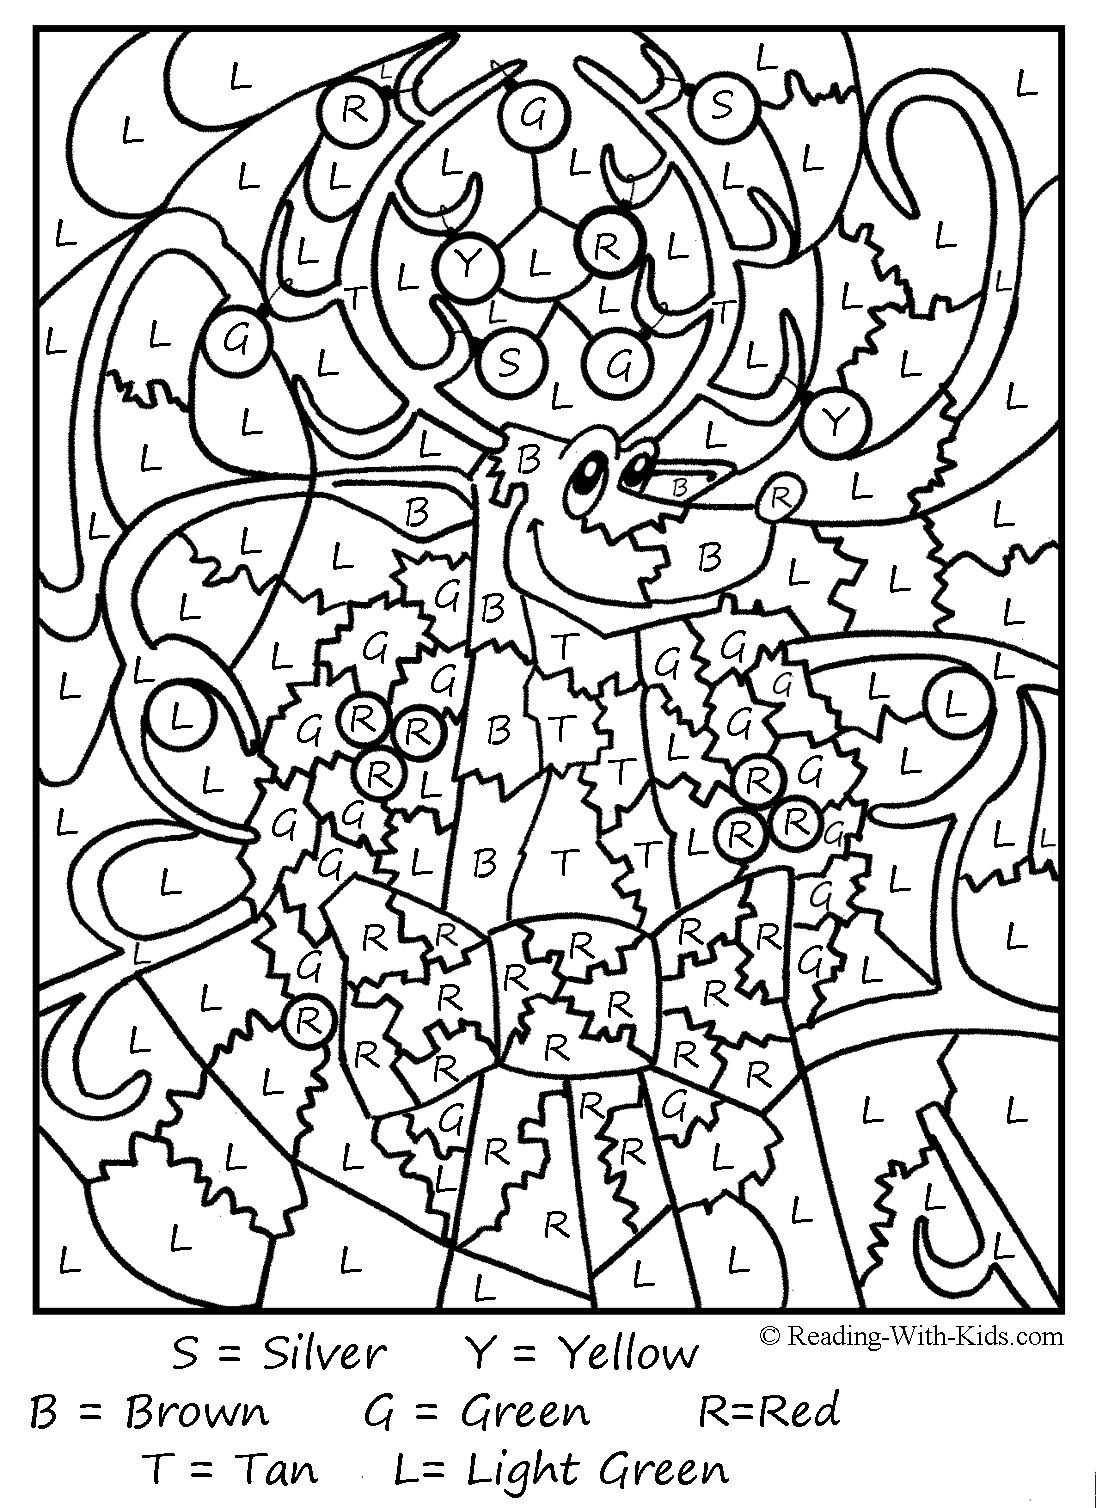 Free printable coloring pages about christmas - Color By Letter And Color By Number Coloring Pages Are Fun And